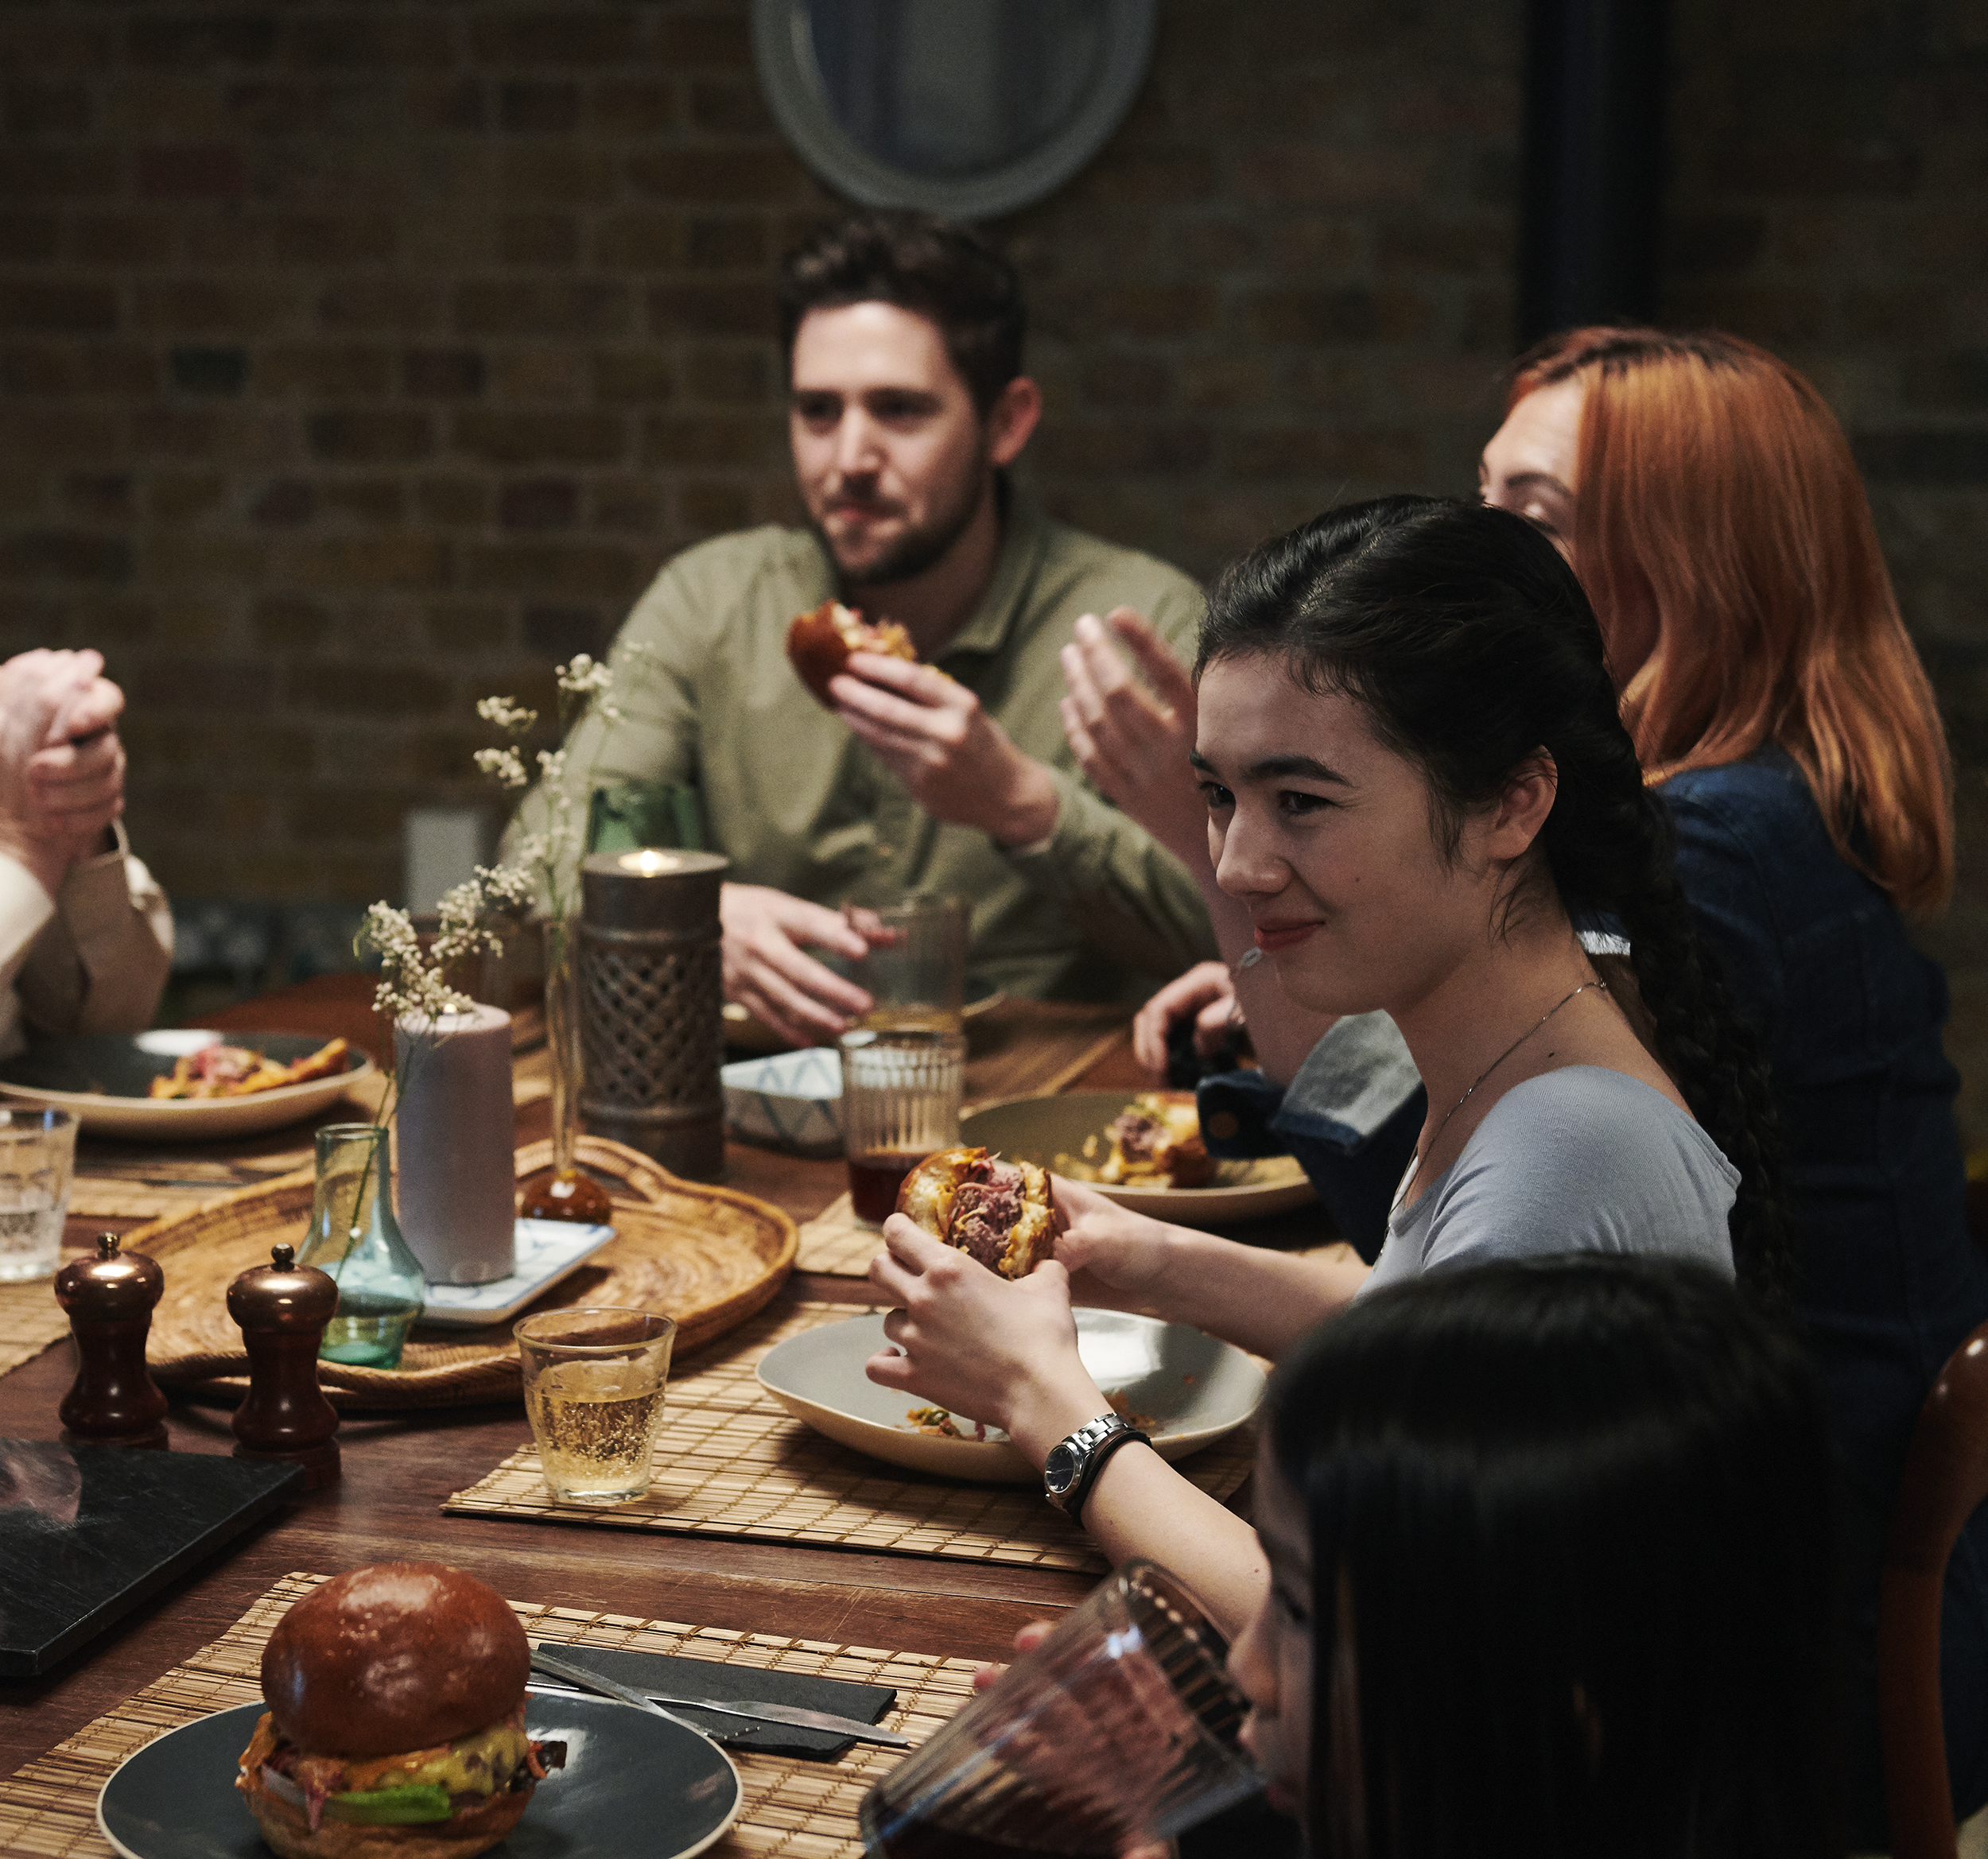 lifestyle image of a family meal by food photographer Holly Pickering